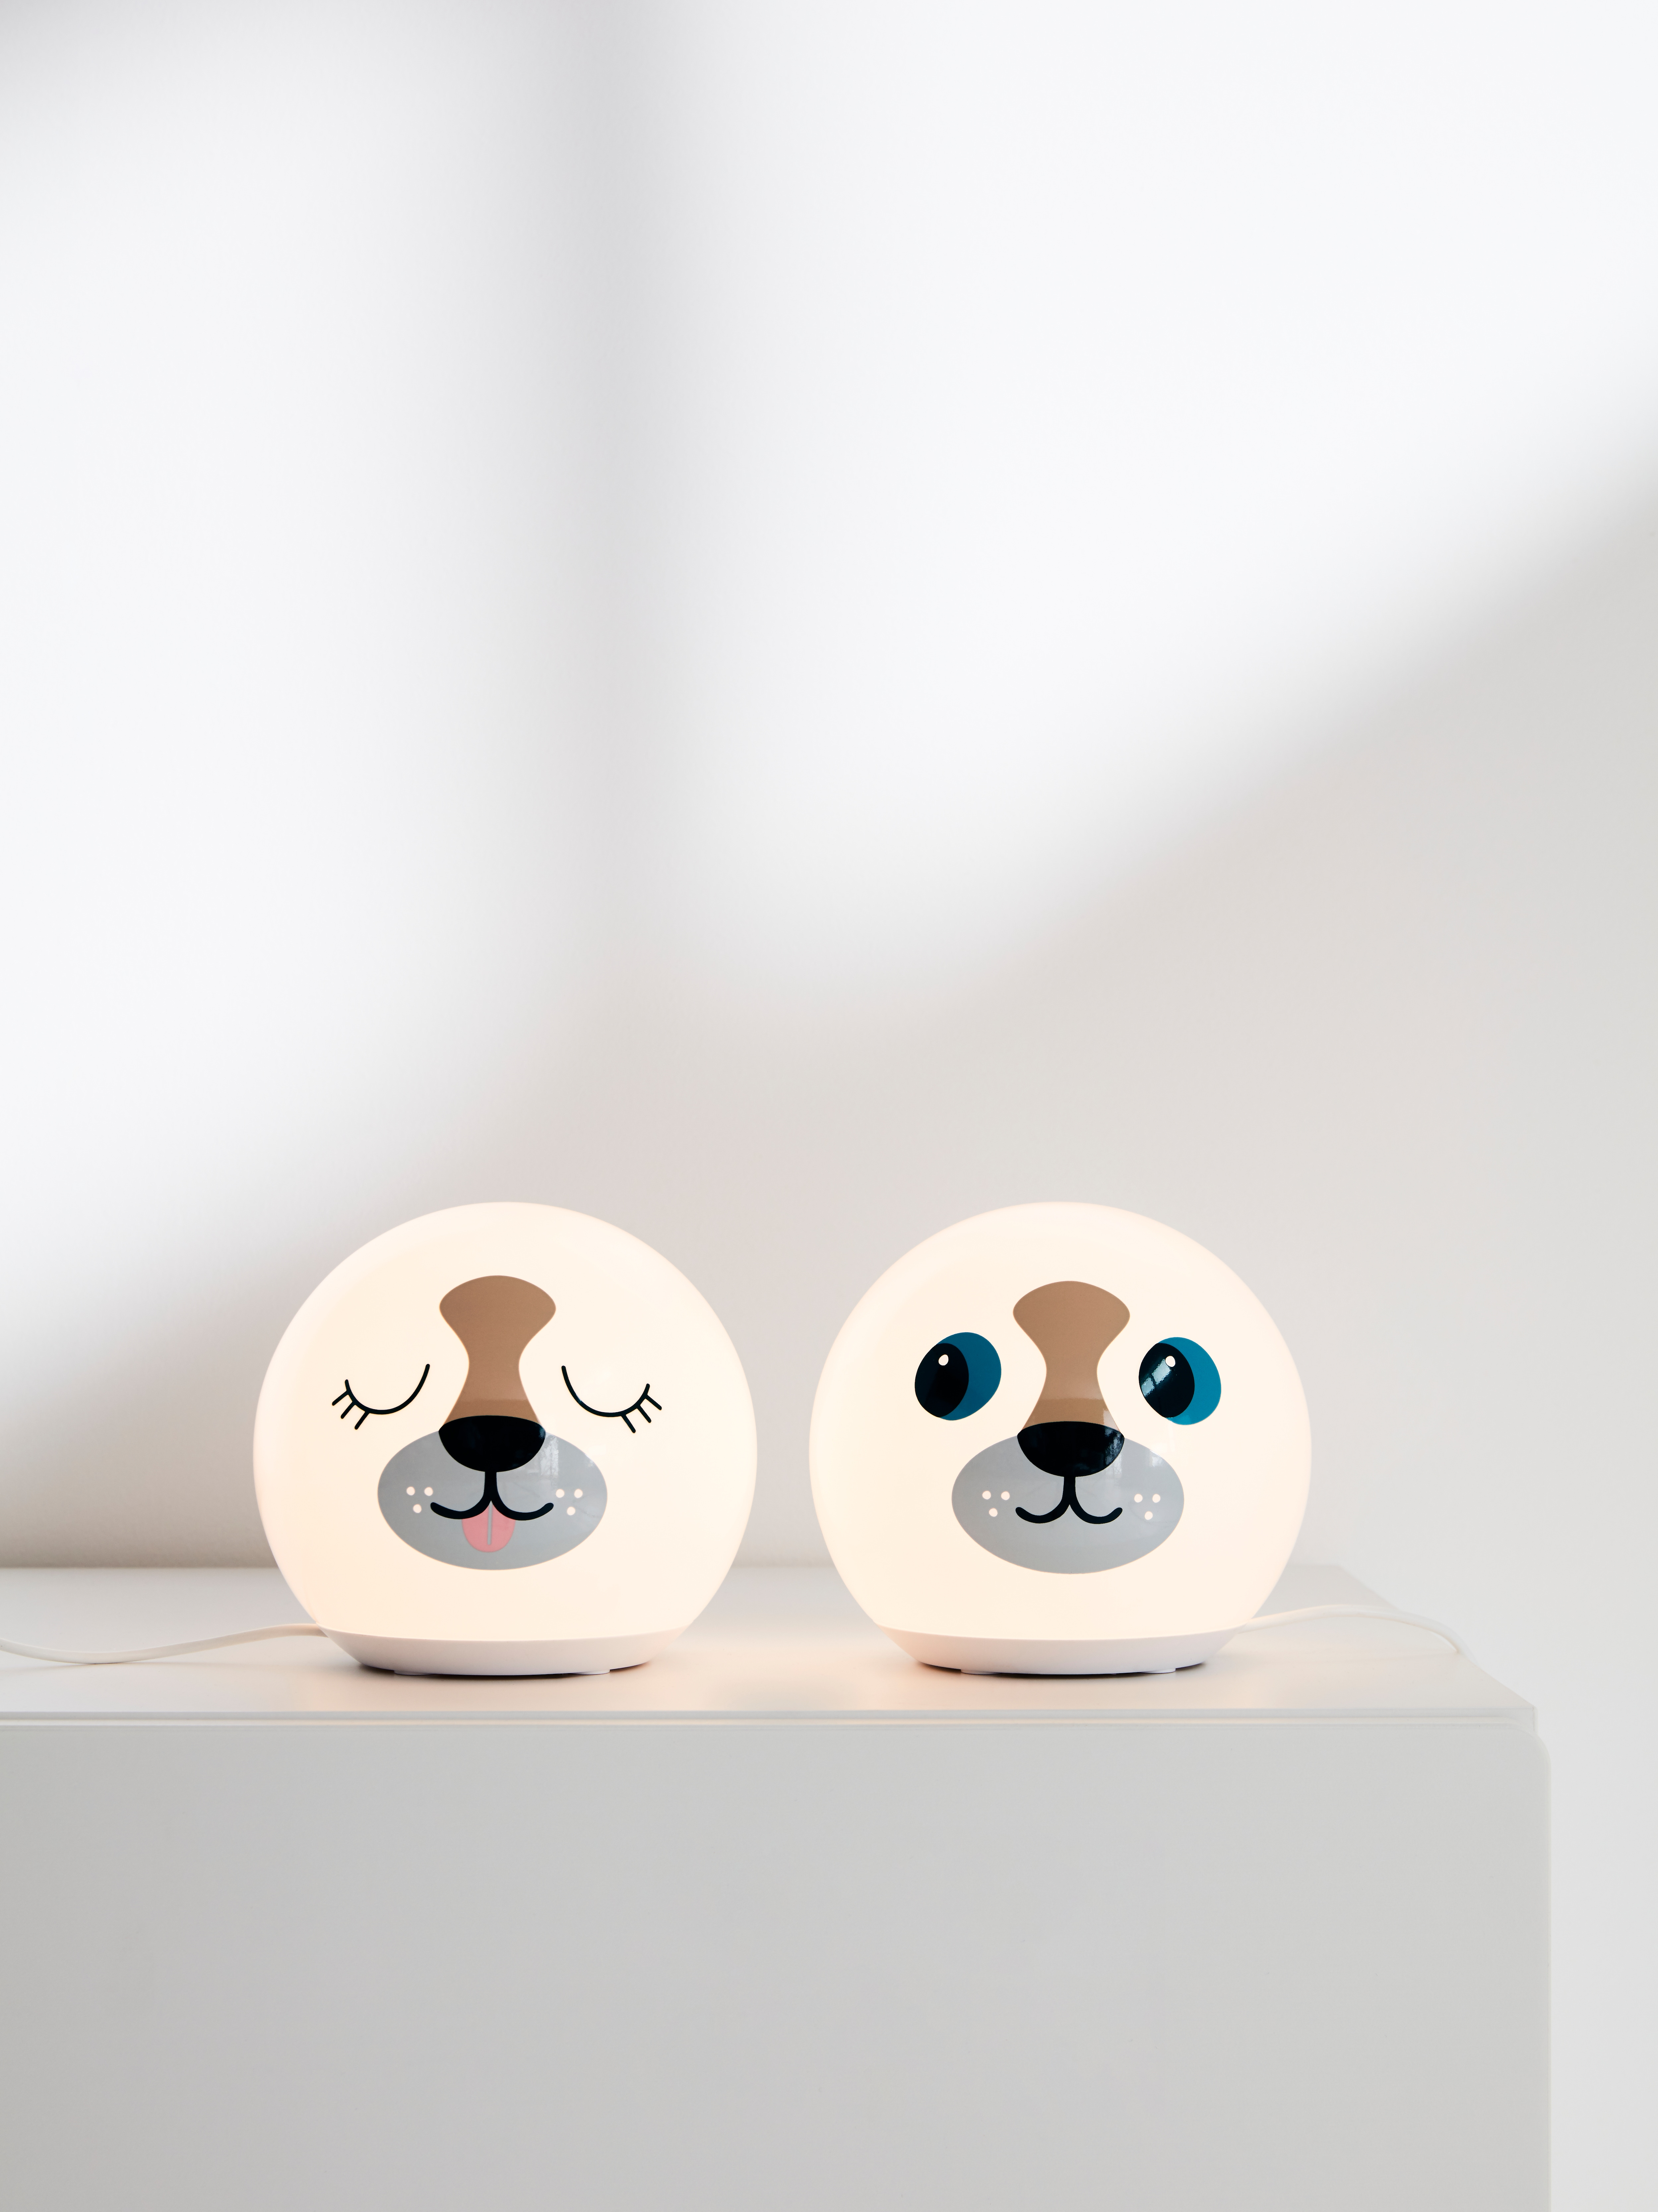 Two lit ÄNGARNA LED table lamps that look like dogs, one with eyes open and one with eyes closed, on a grey display plinth.